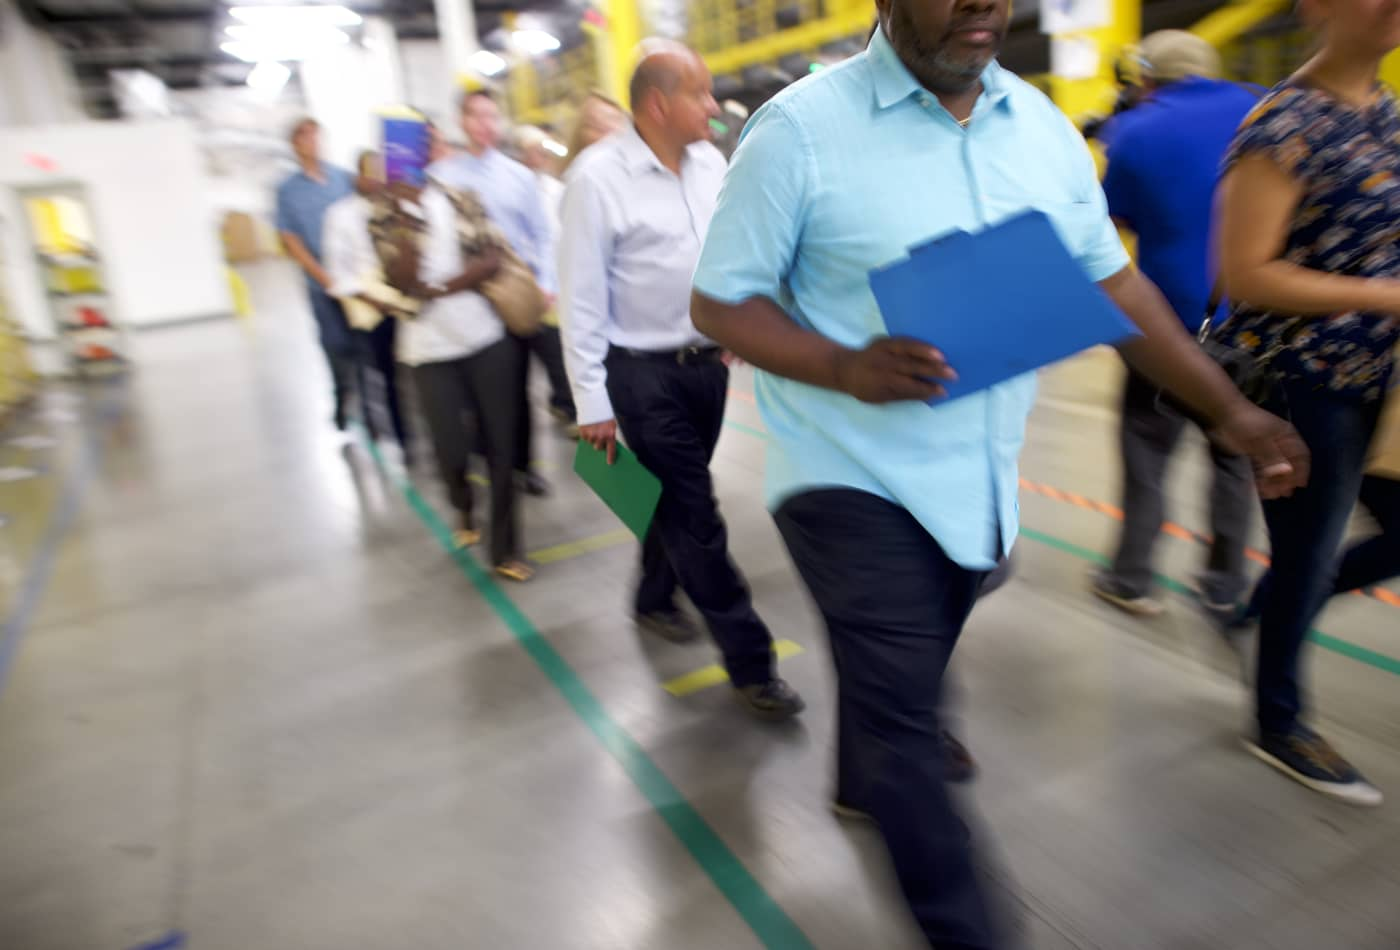 US weekly jobless claims rise slightly, while mid-Atlantic factory activity accelerates